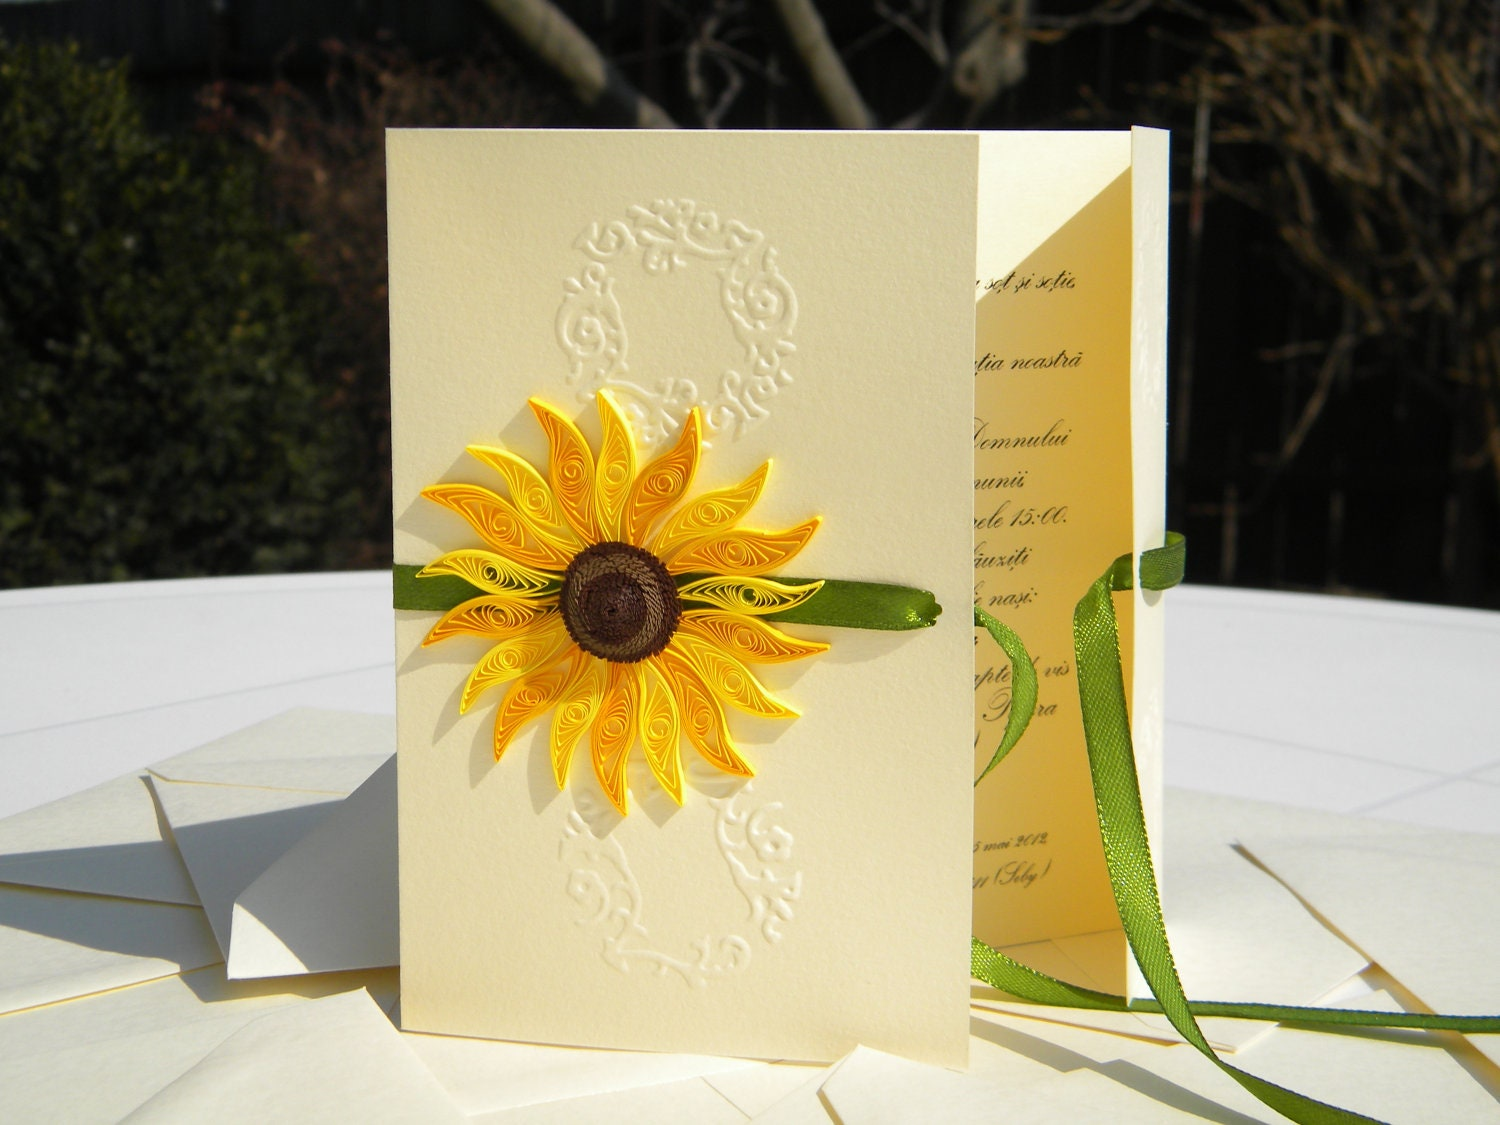 Inviti Matrimonio Girasoli : Elegant sunflower wedding invitation summer weddong